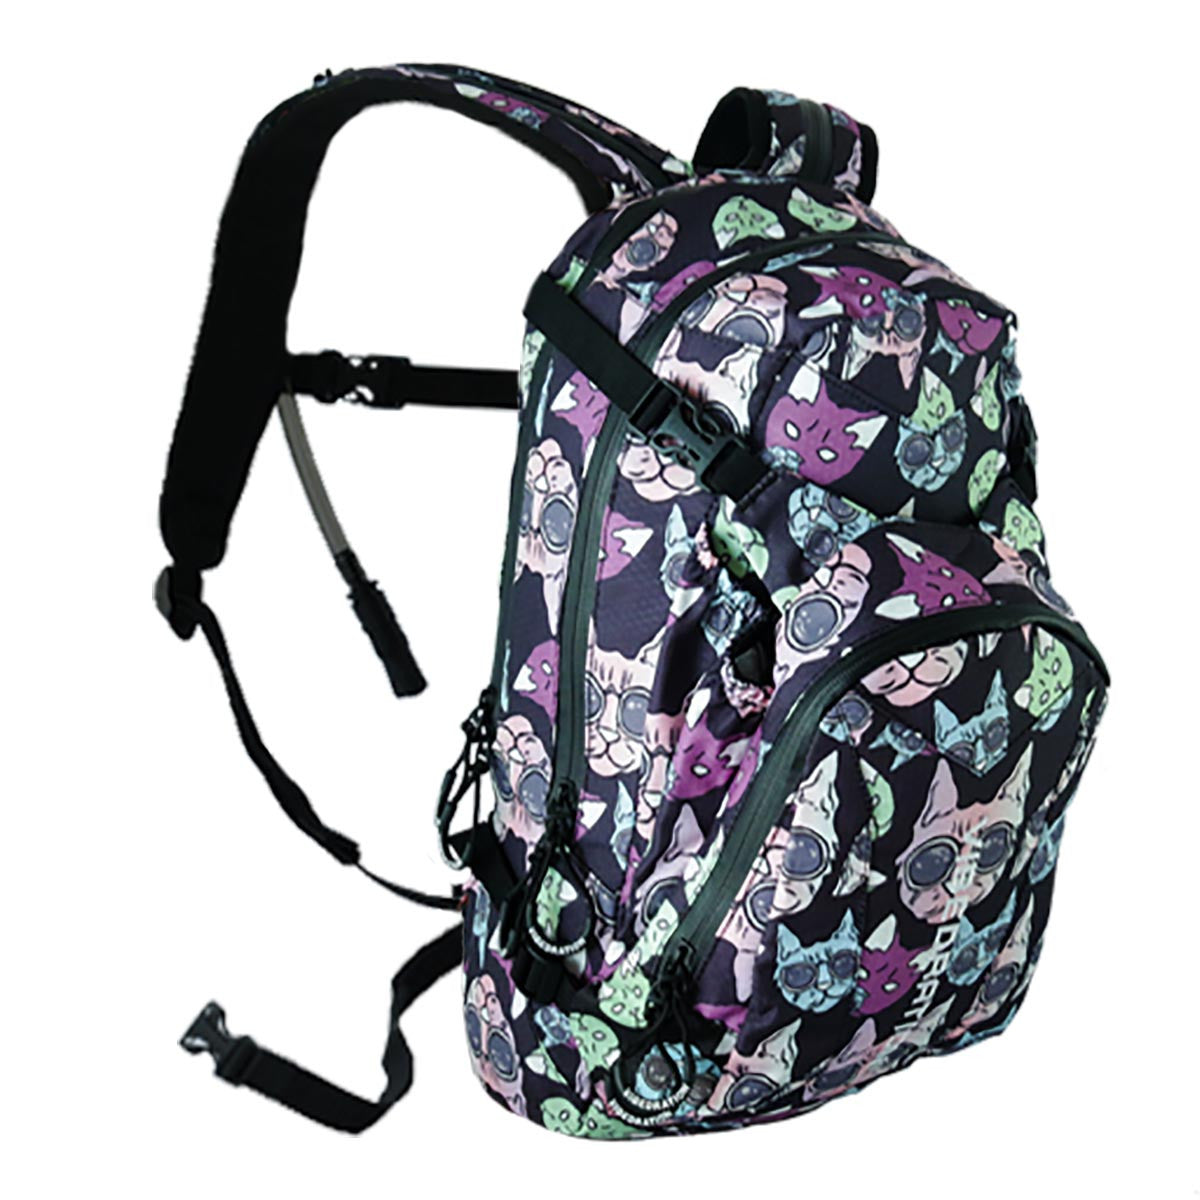 The Animal Style Party Cats hydration pack is great for festivals!